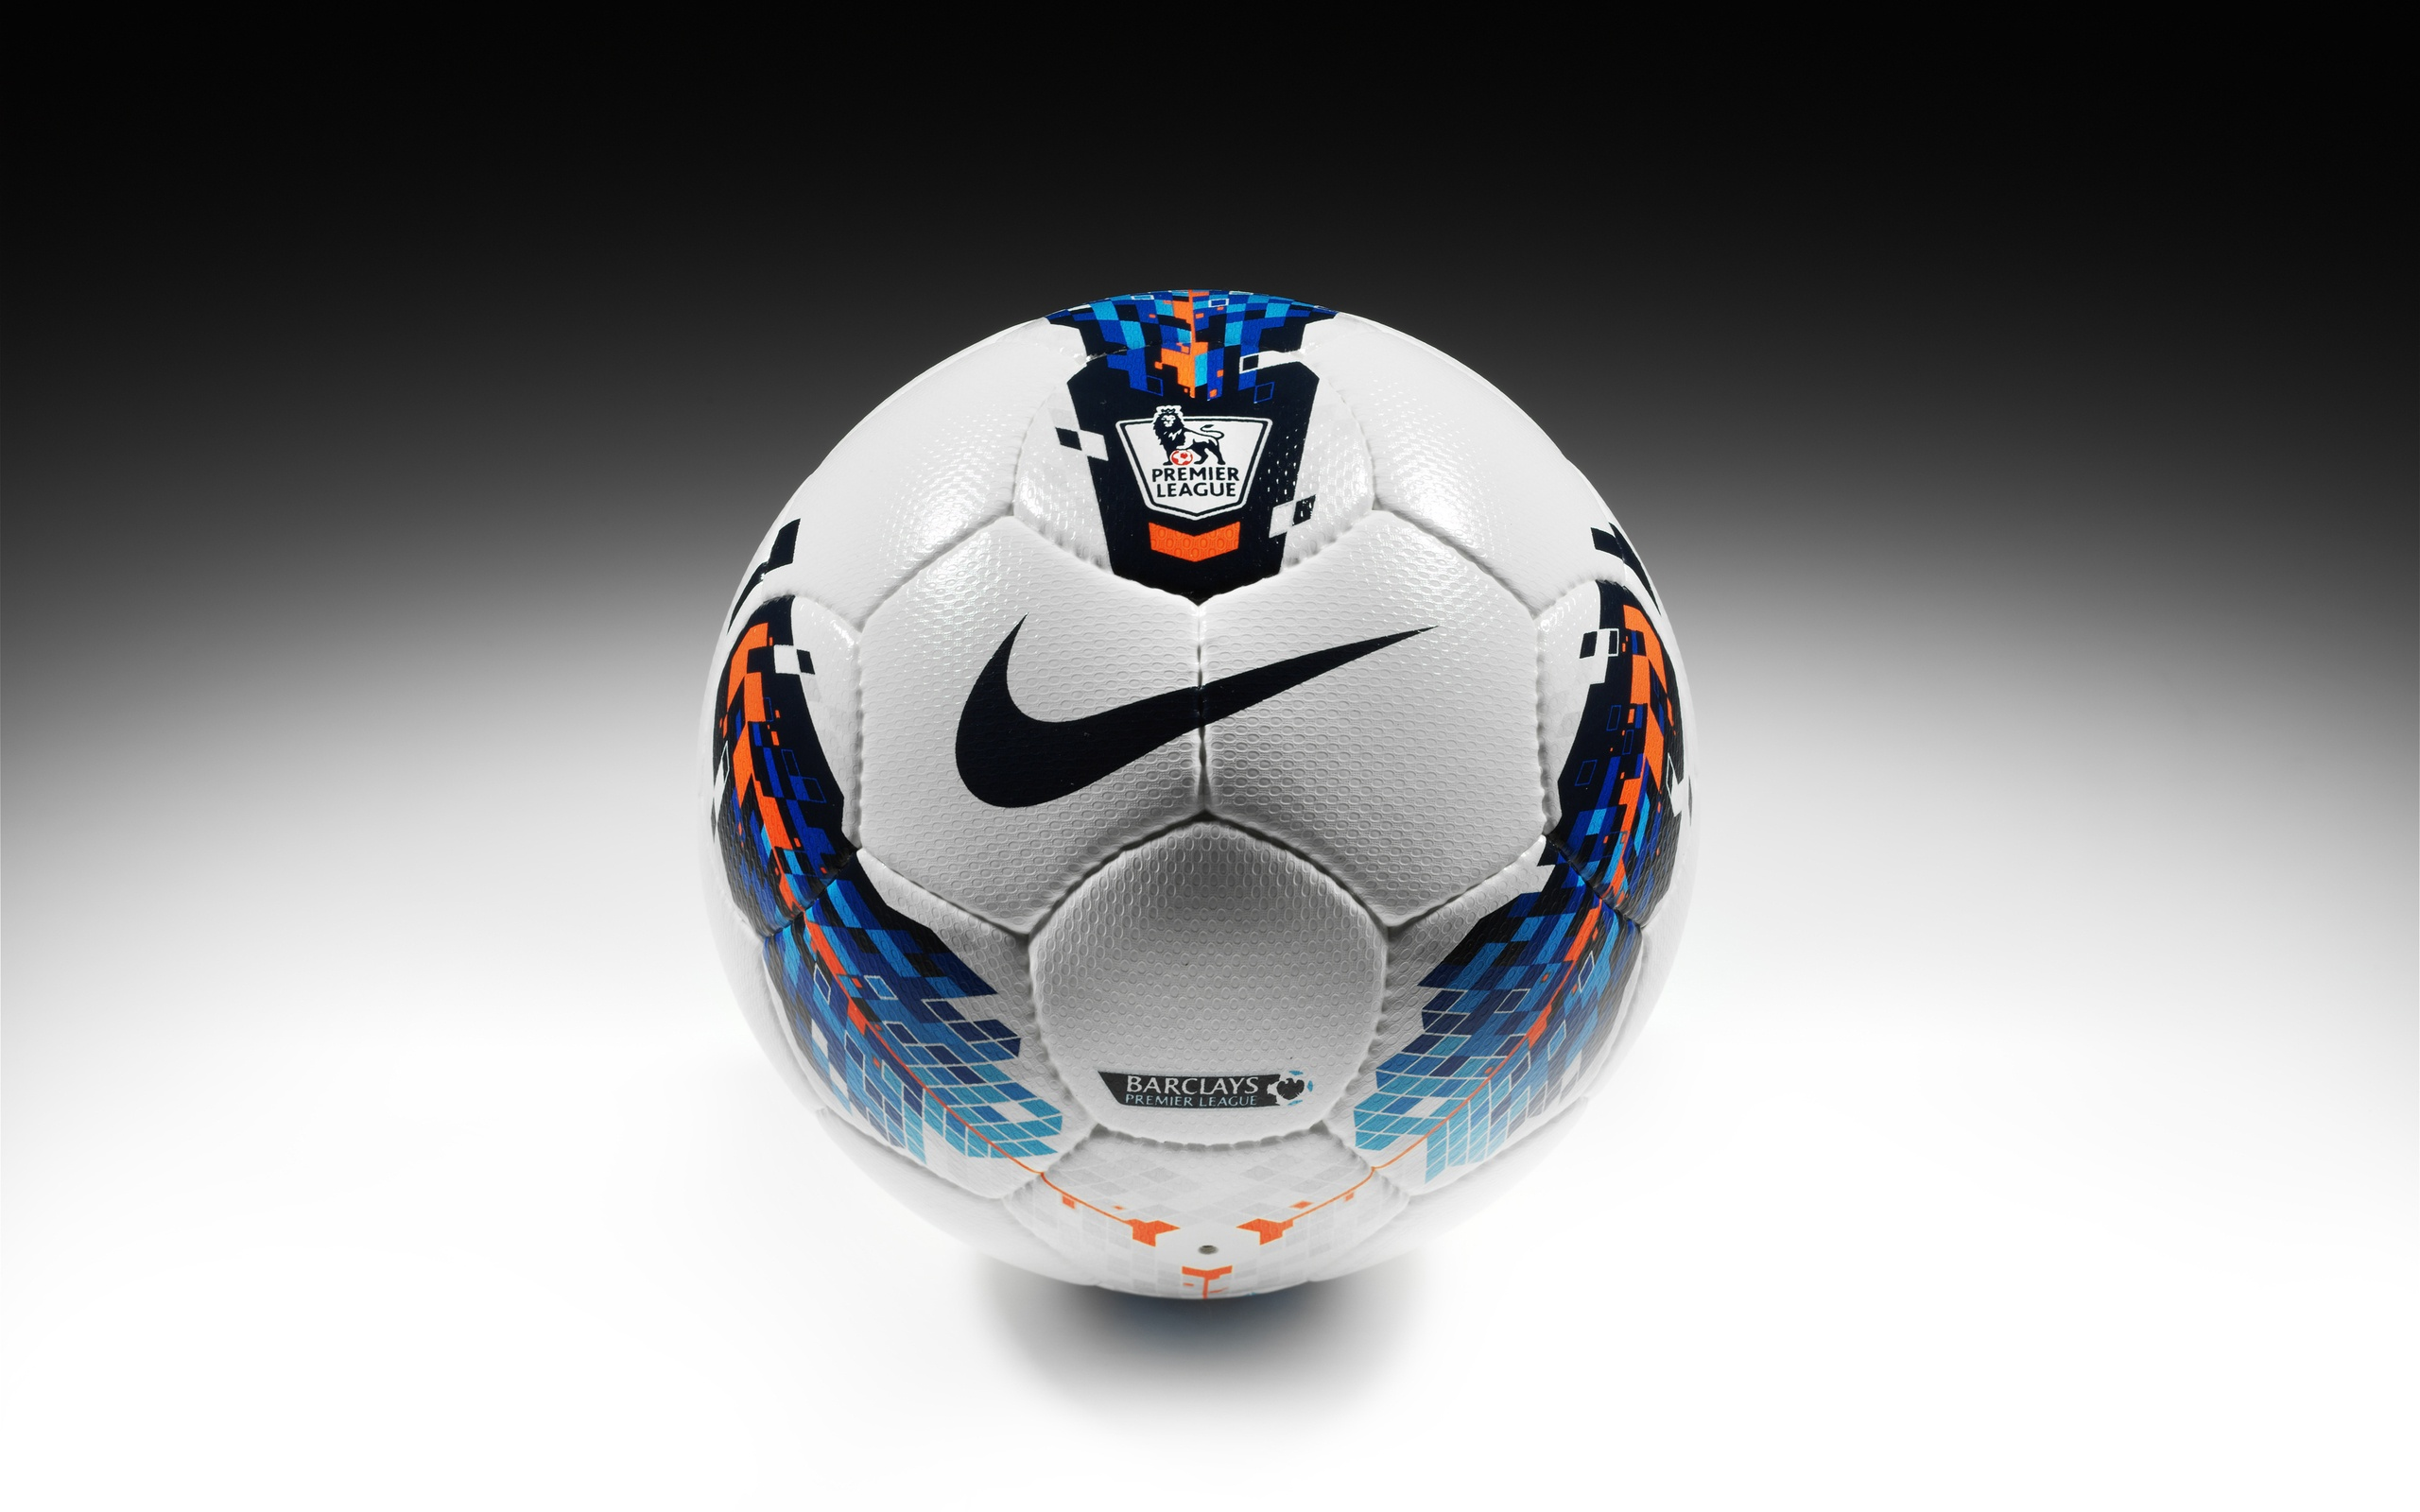 Download image Nike Hd Wallpaper Soccer Ball Wallpapers PC Android 2560x1600